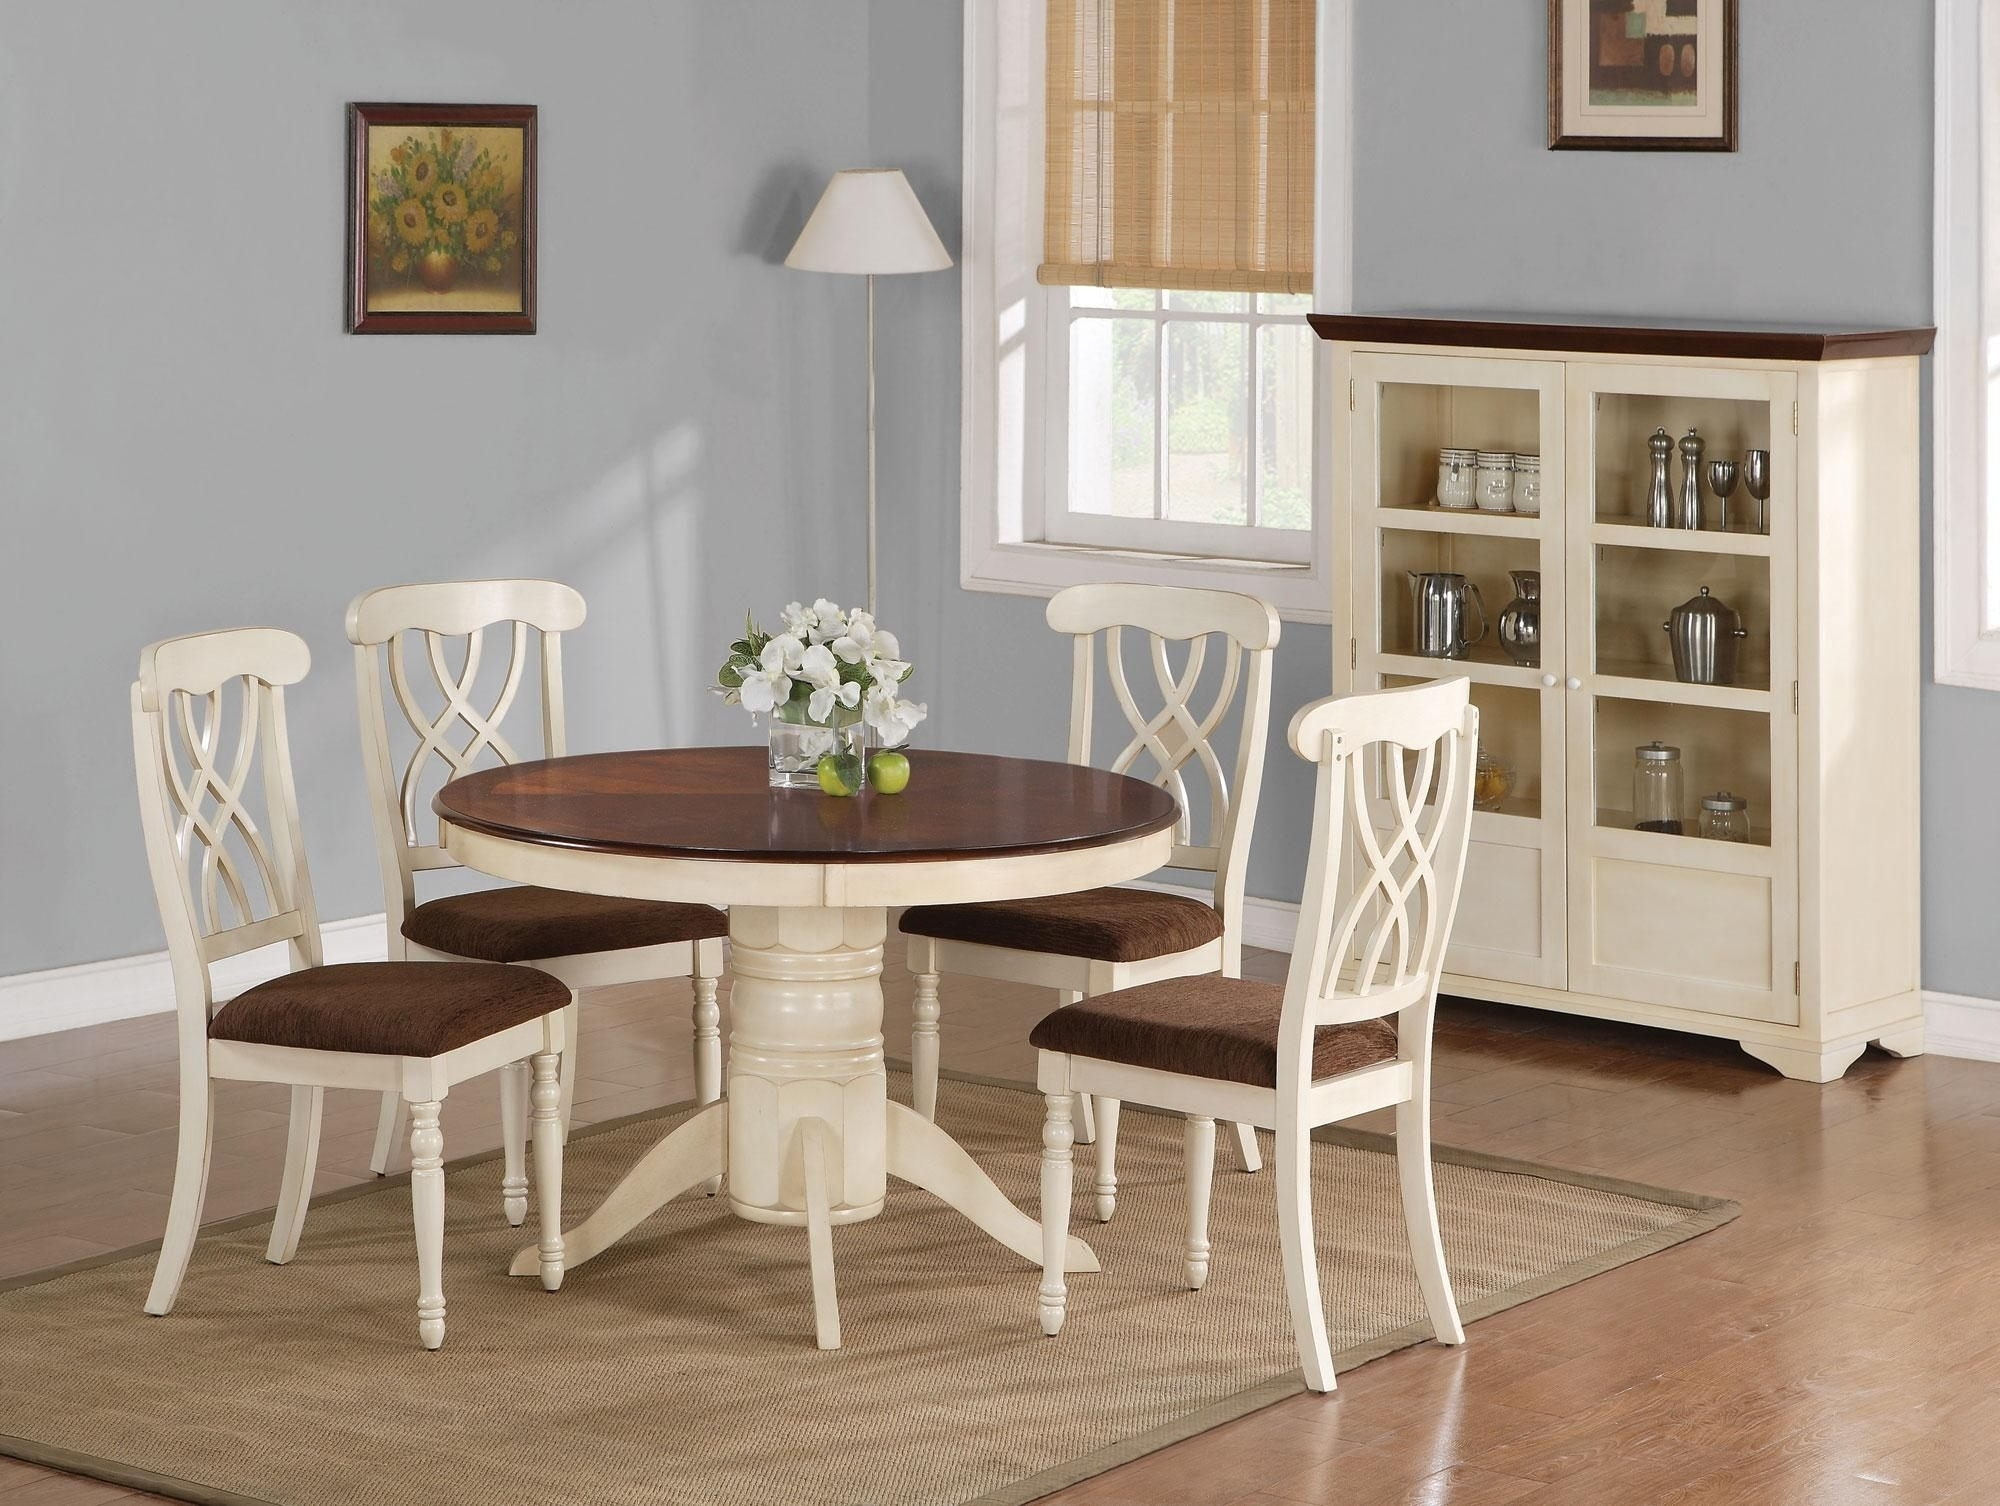 Hudson Round Dining Tables For Famous Room Argos Tables Hudson For Set White Dining Garden Round Sets Kett (View 22 of 25)